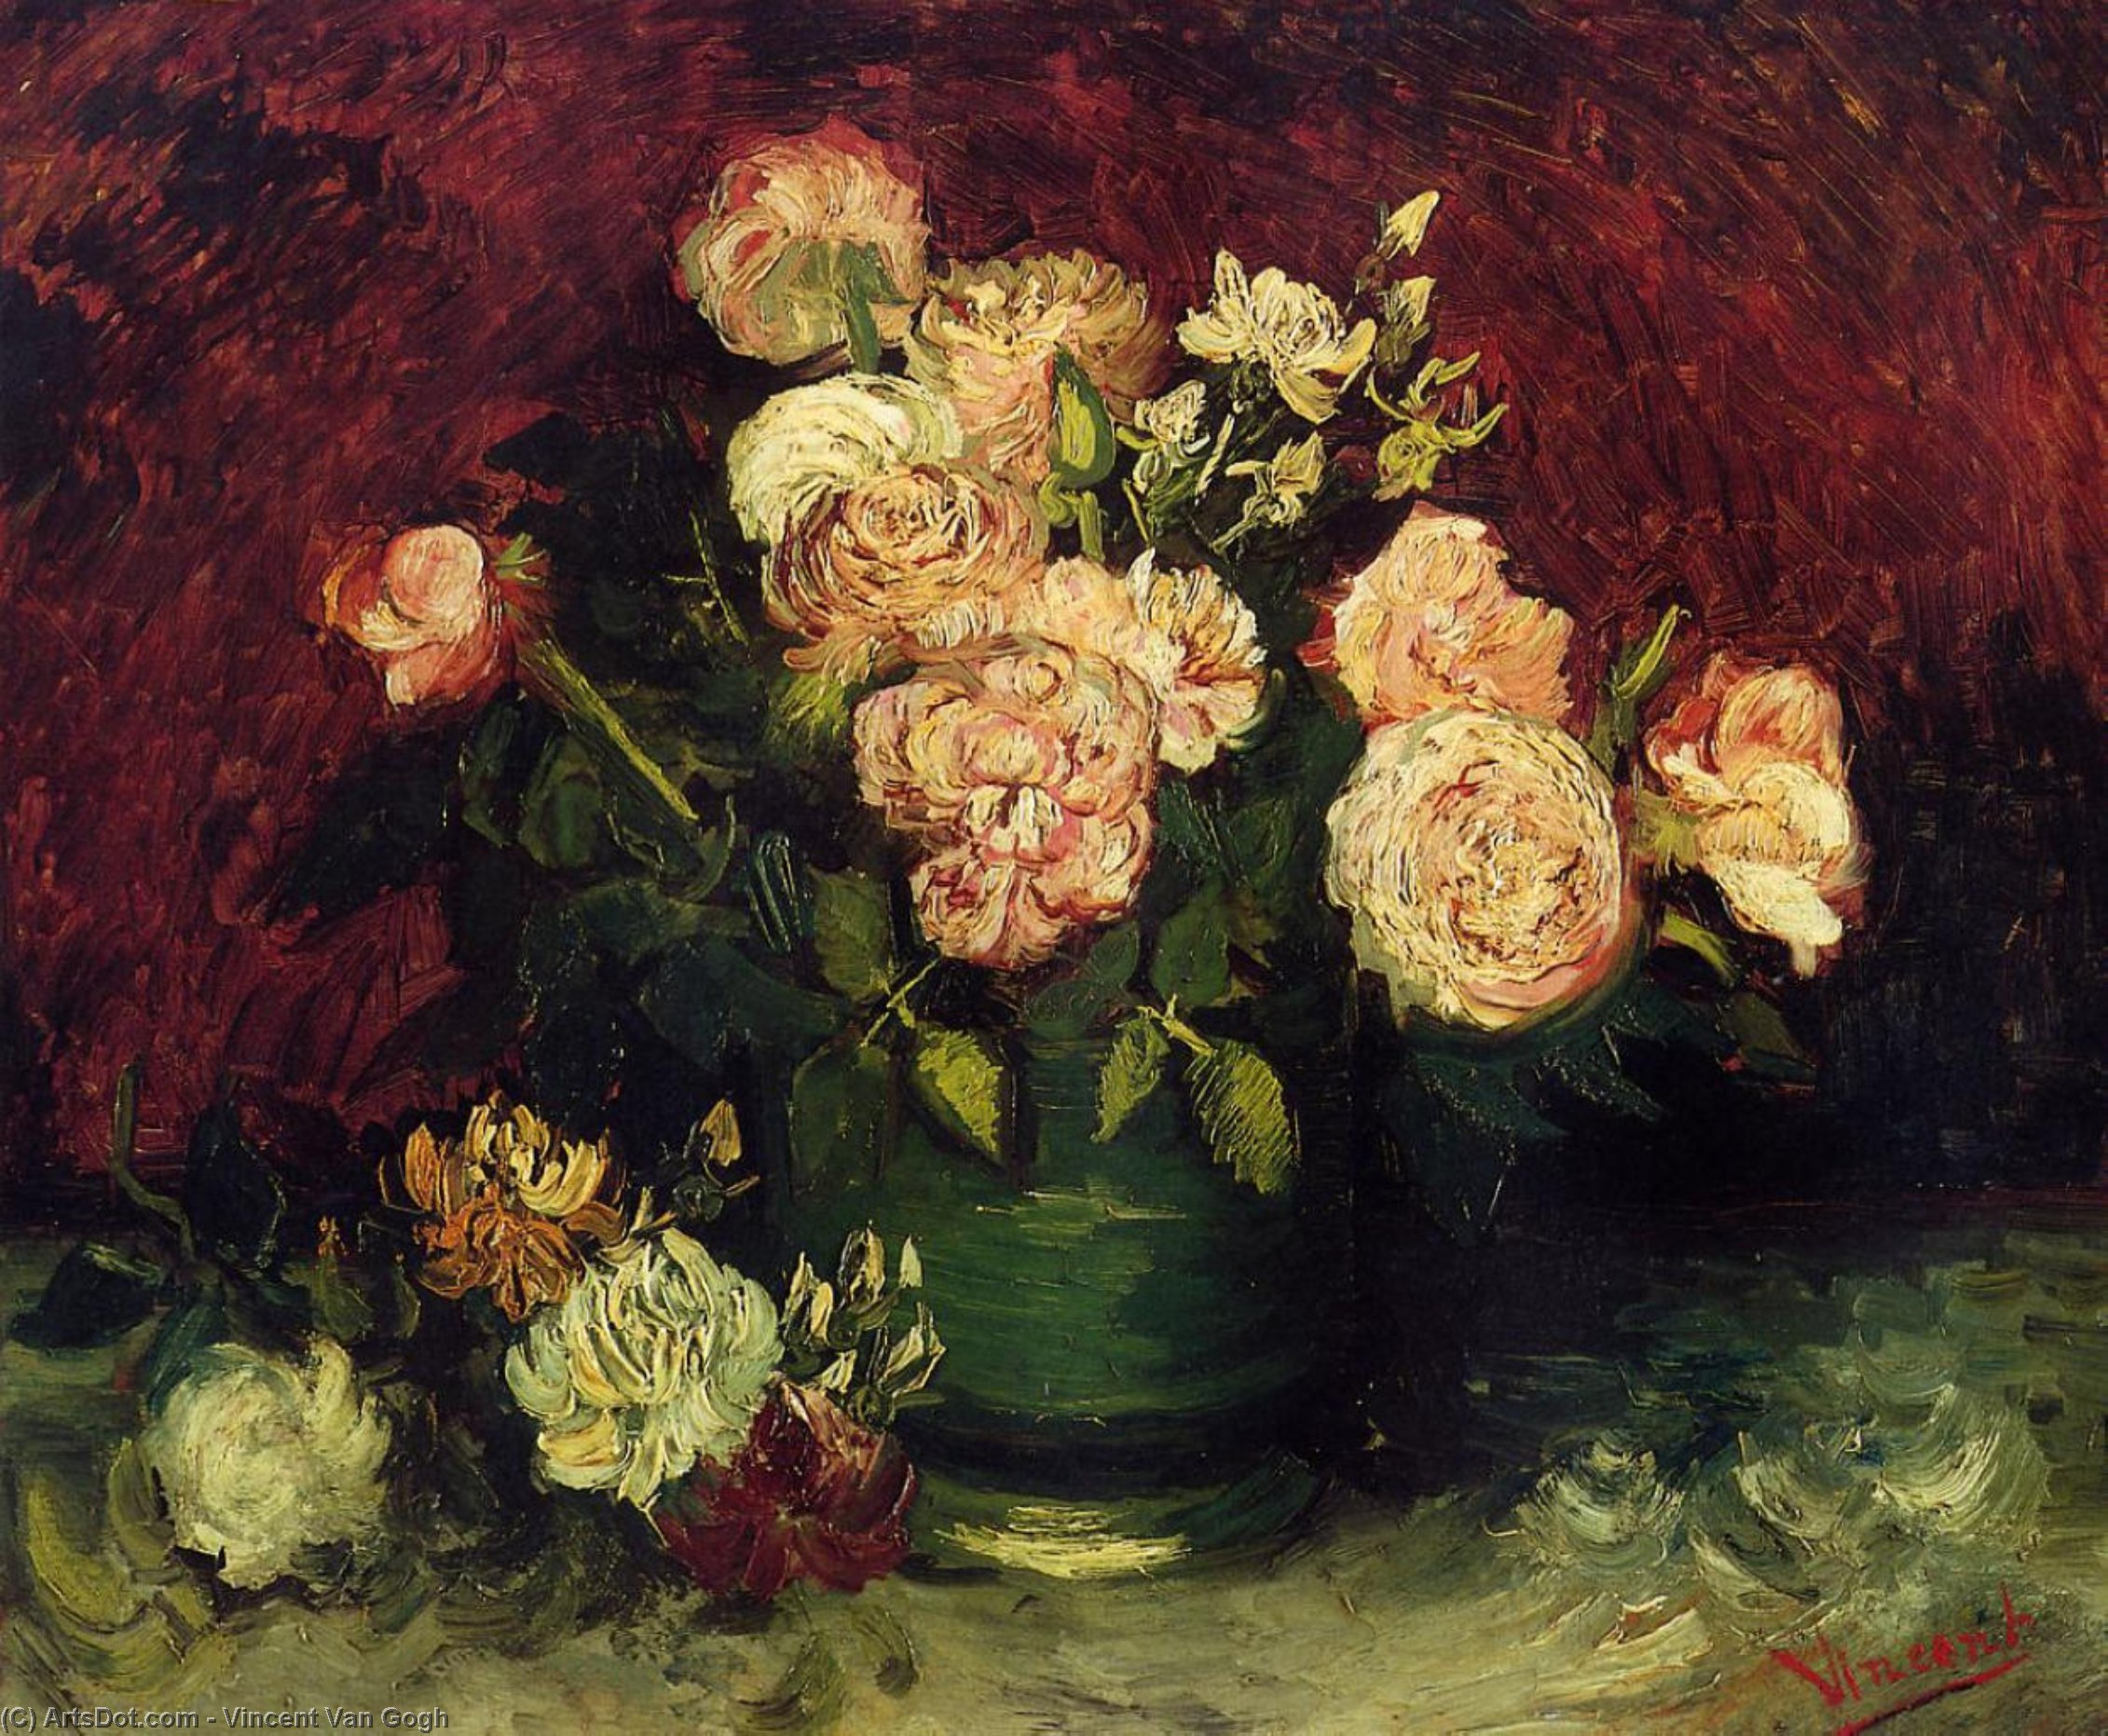 Bowl with Peonies and Roses, 1886 by Vincent Van Gogh (1853-1890, Netherlands) | Oil Painting | ArtsDot.com